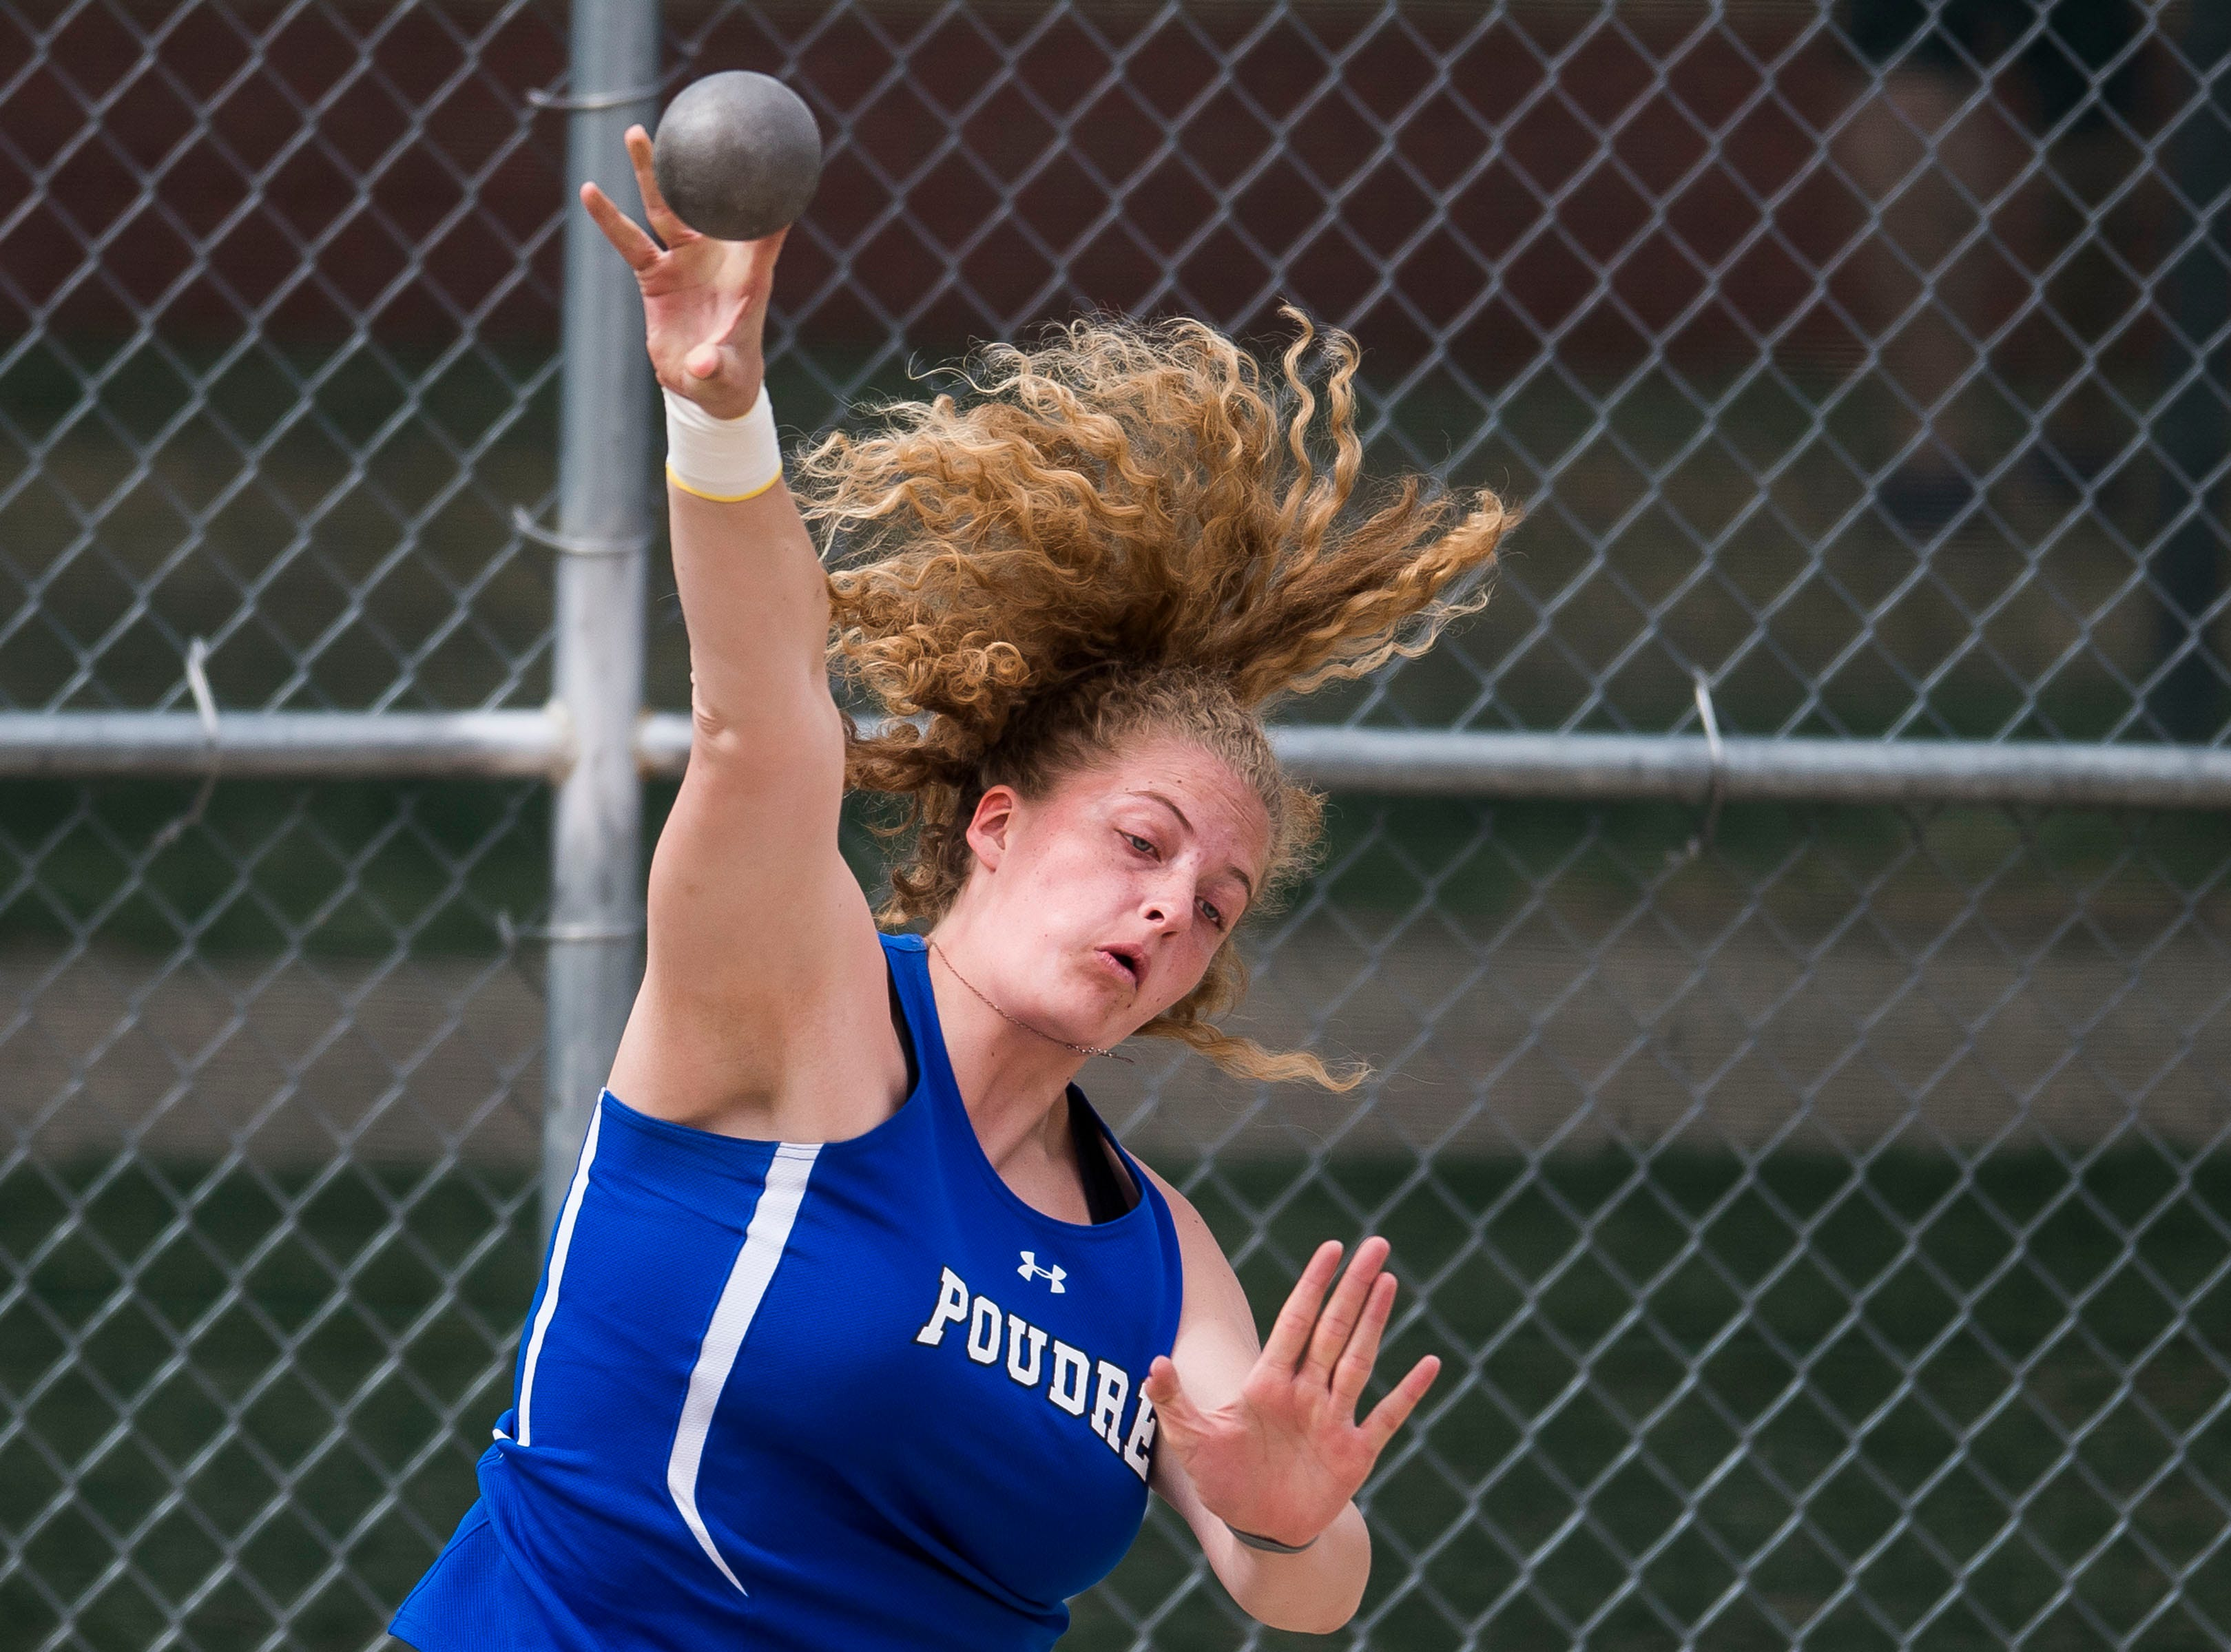 Poudre's Danisa Brost competes in the shot-put during the Randy Yaussi City Track Championships on Tuesday, April 9, 2019, at French Field in Fort Collins, Colo.